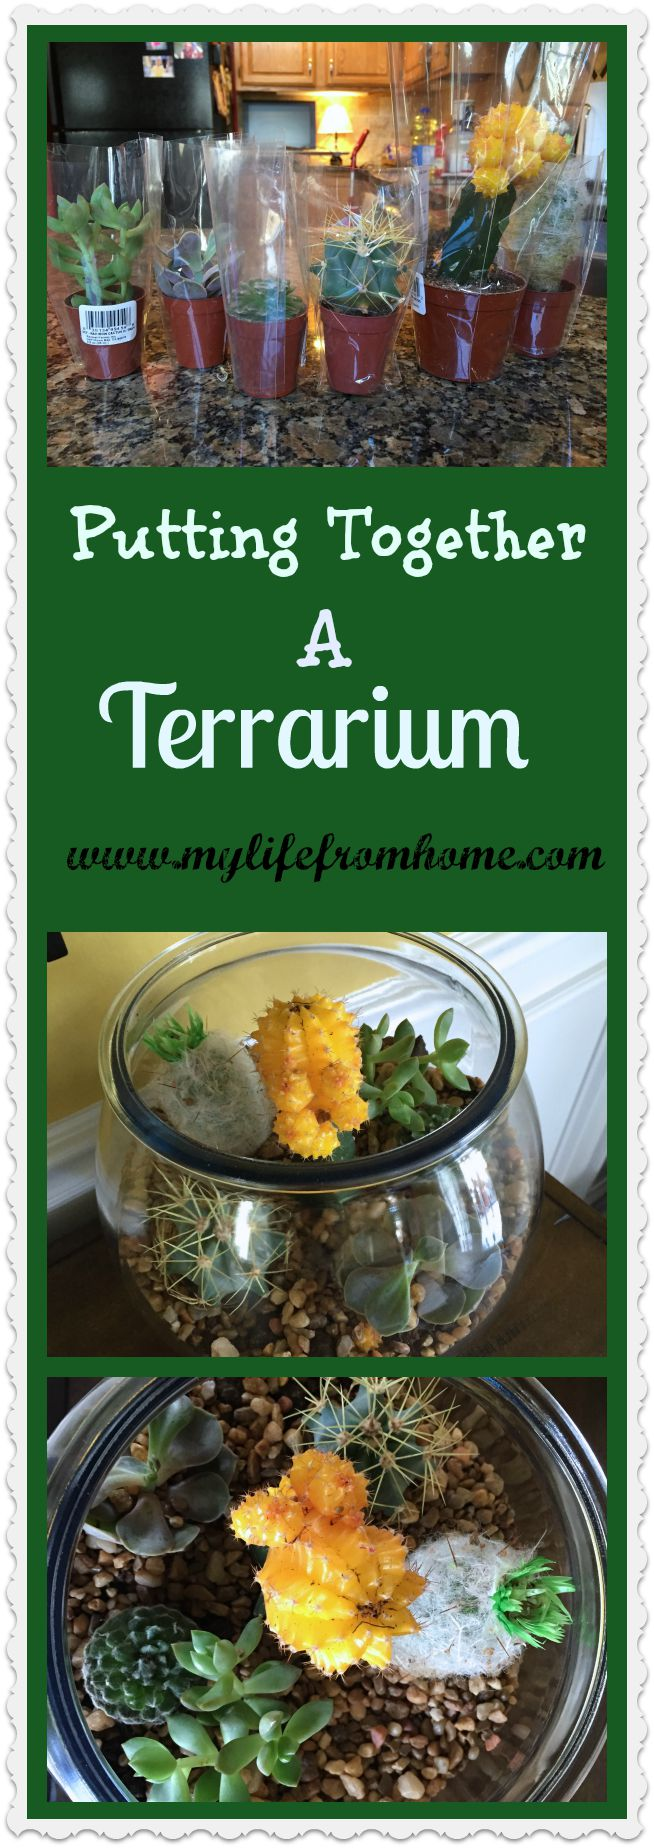 Putting Together a Terrarium by www.mylifefromhome.com